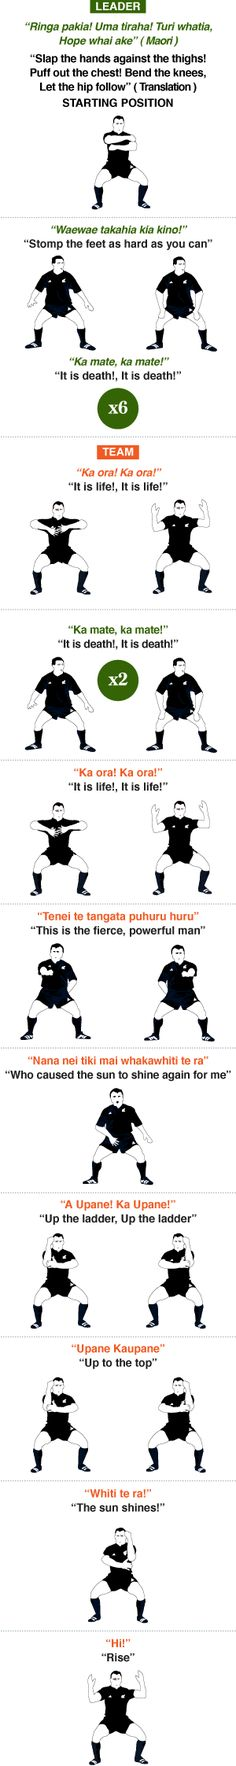 How to do the Haka: Master the fearsome Maori dance in 11 Steps (with pictures) - Telegraph Rugby League, Rugby Players, Rugby Time, Rugby Rules, Rugby Workout, Rugby Girls, Rugby Coaching, Rugby Training, International Rugby